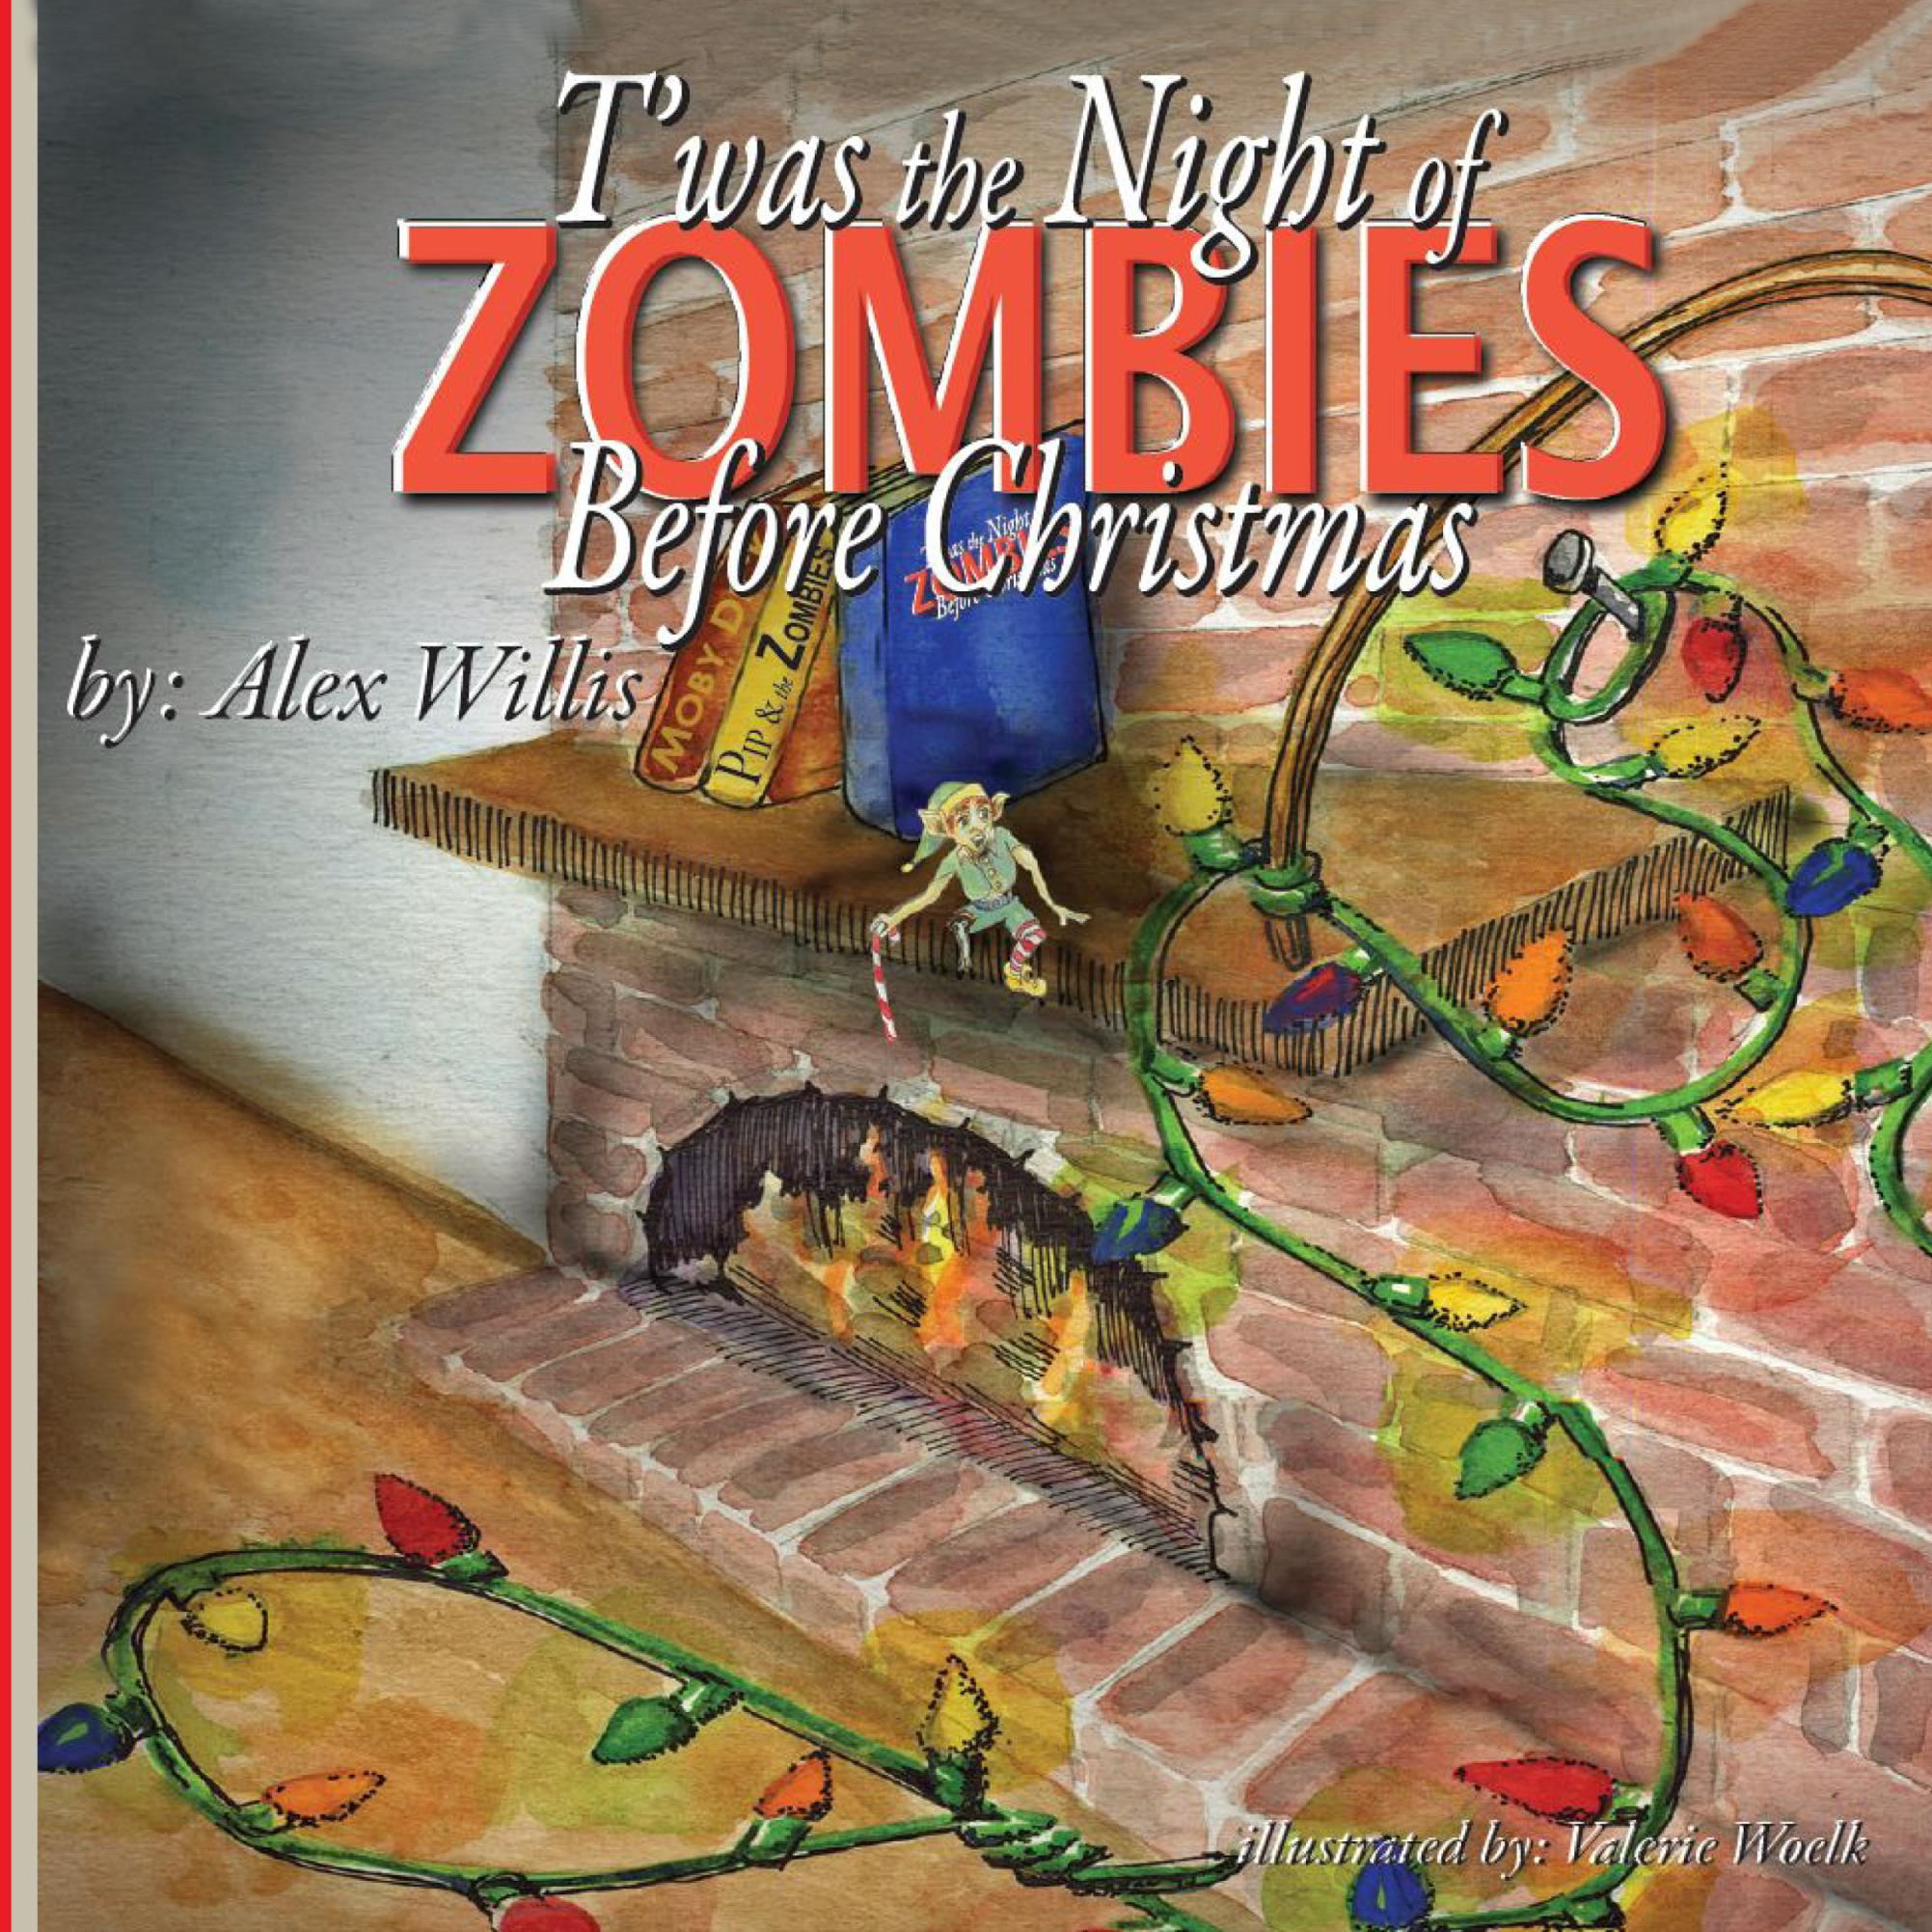 T'was the Night of Zombies before Christmas By: Alex Willis